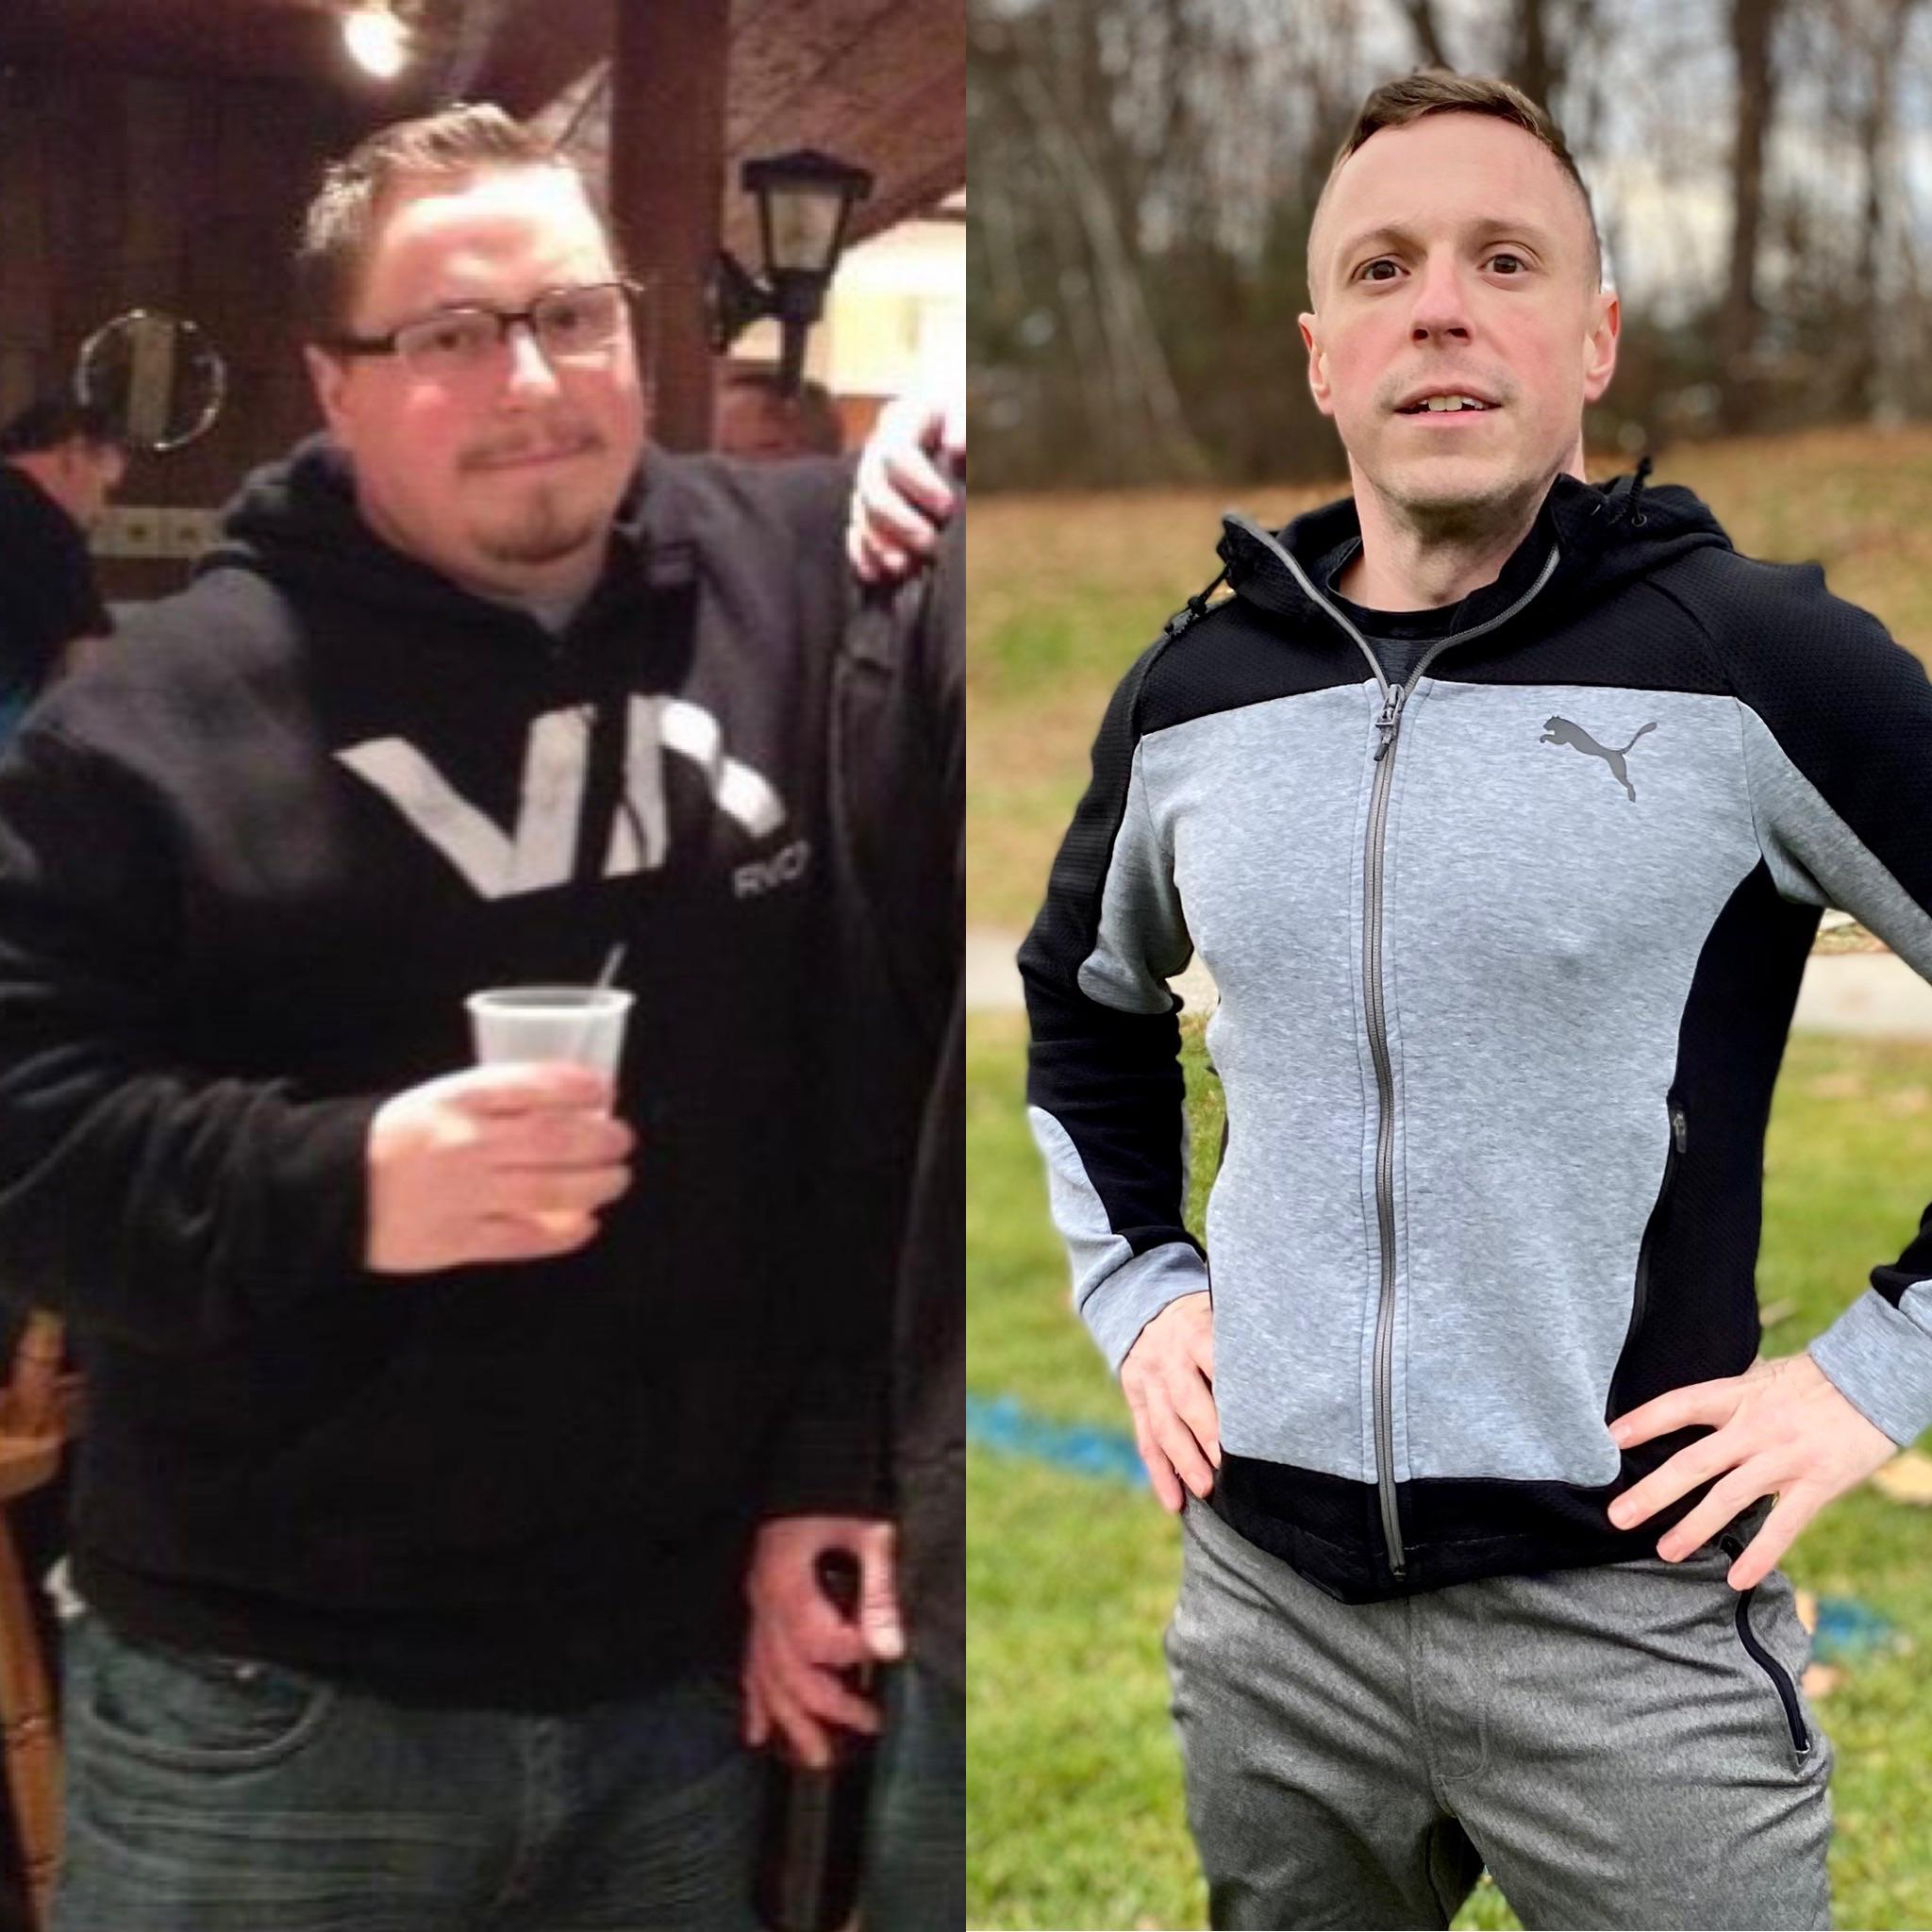 [image] I was very depressed and unhealthy in my 20s. I made some big lifestyle changes when I entered my 30s including quitting drinking and smoking. Fitness and a healthy lifestyle has given me a new outlook on life.